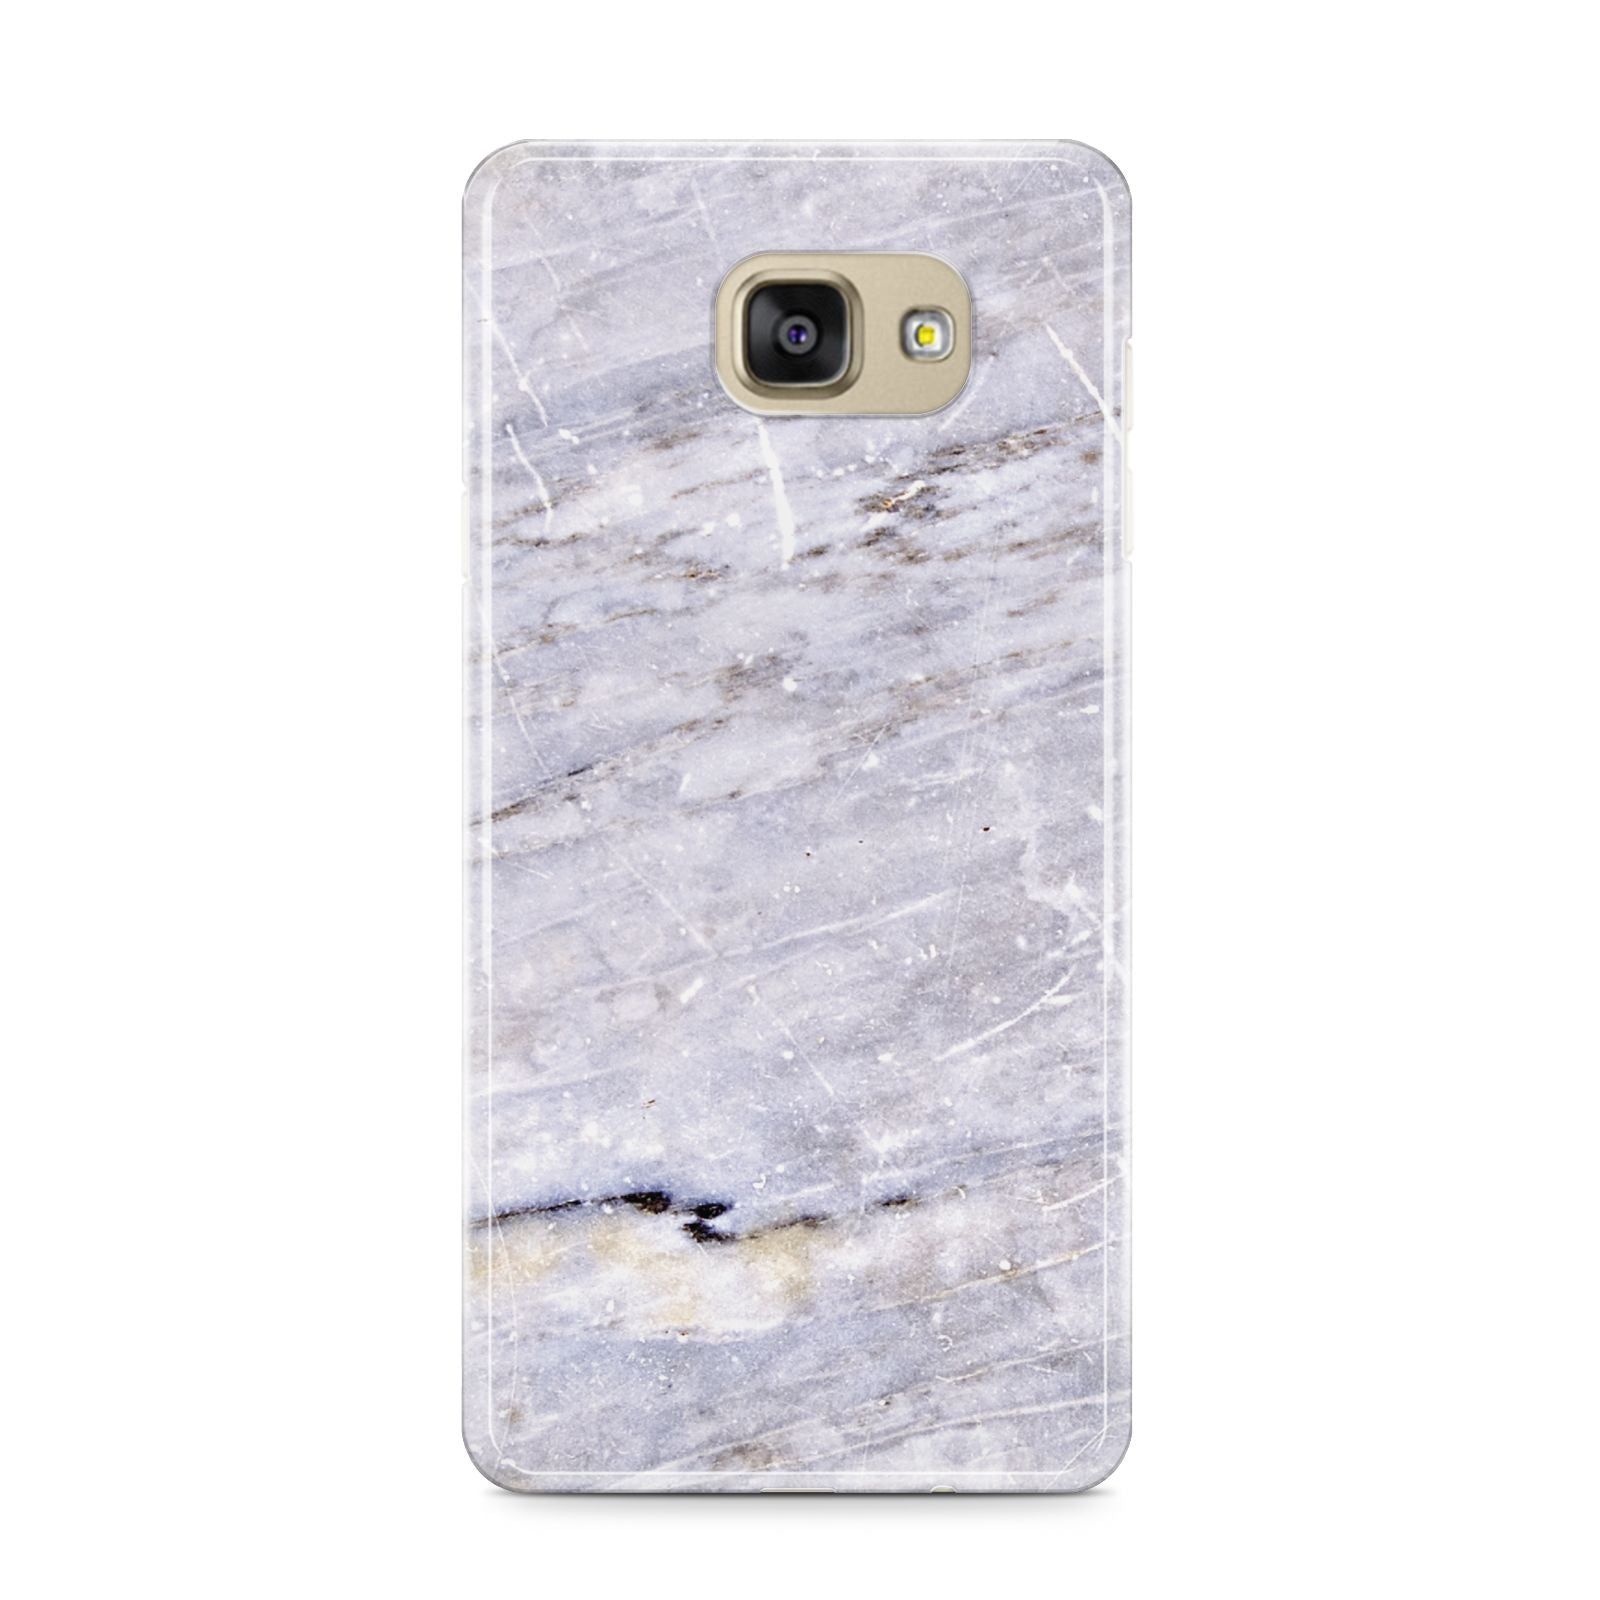 Faux Marble Mid Grey Samsung Galaxy A9 2016 Case on gold phone